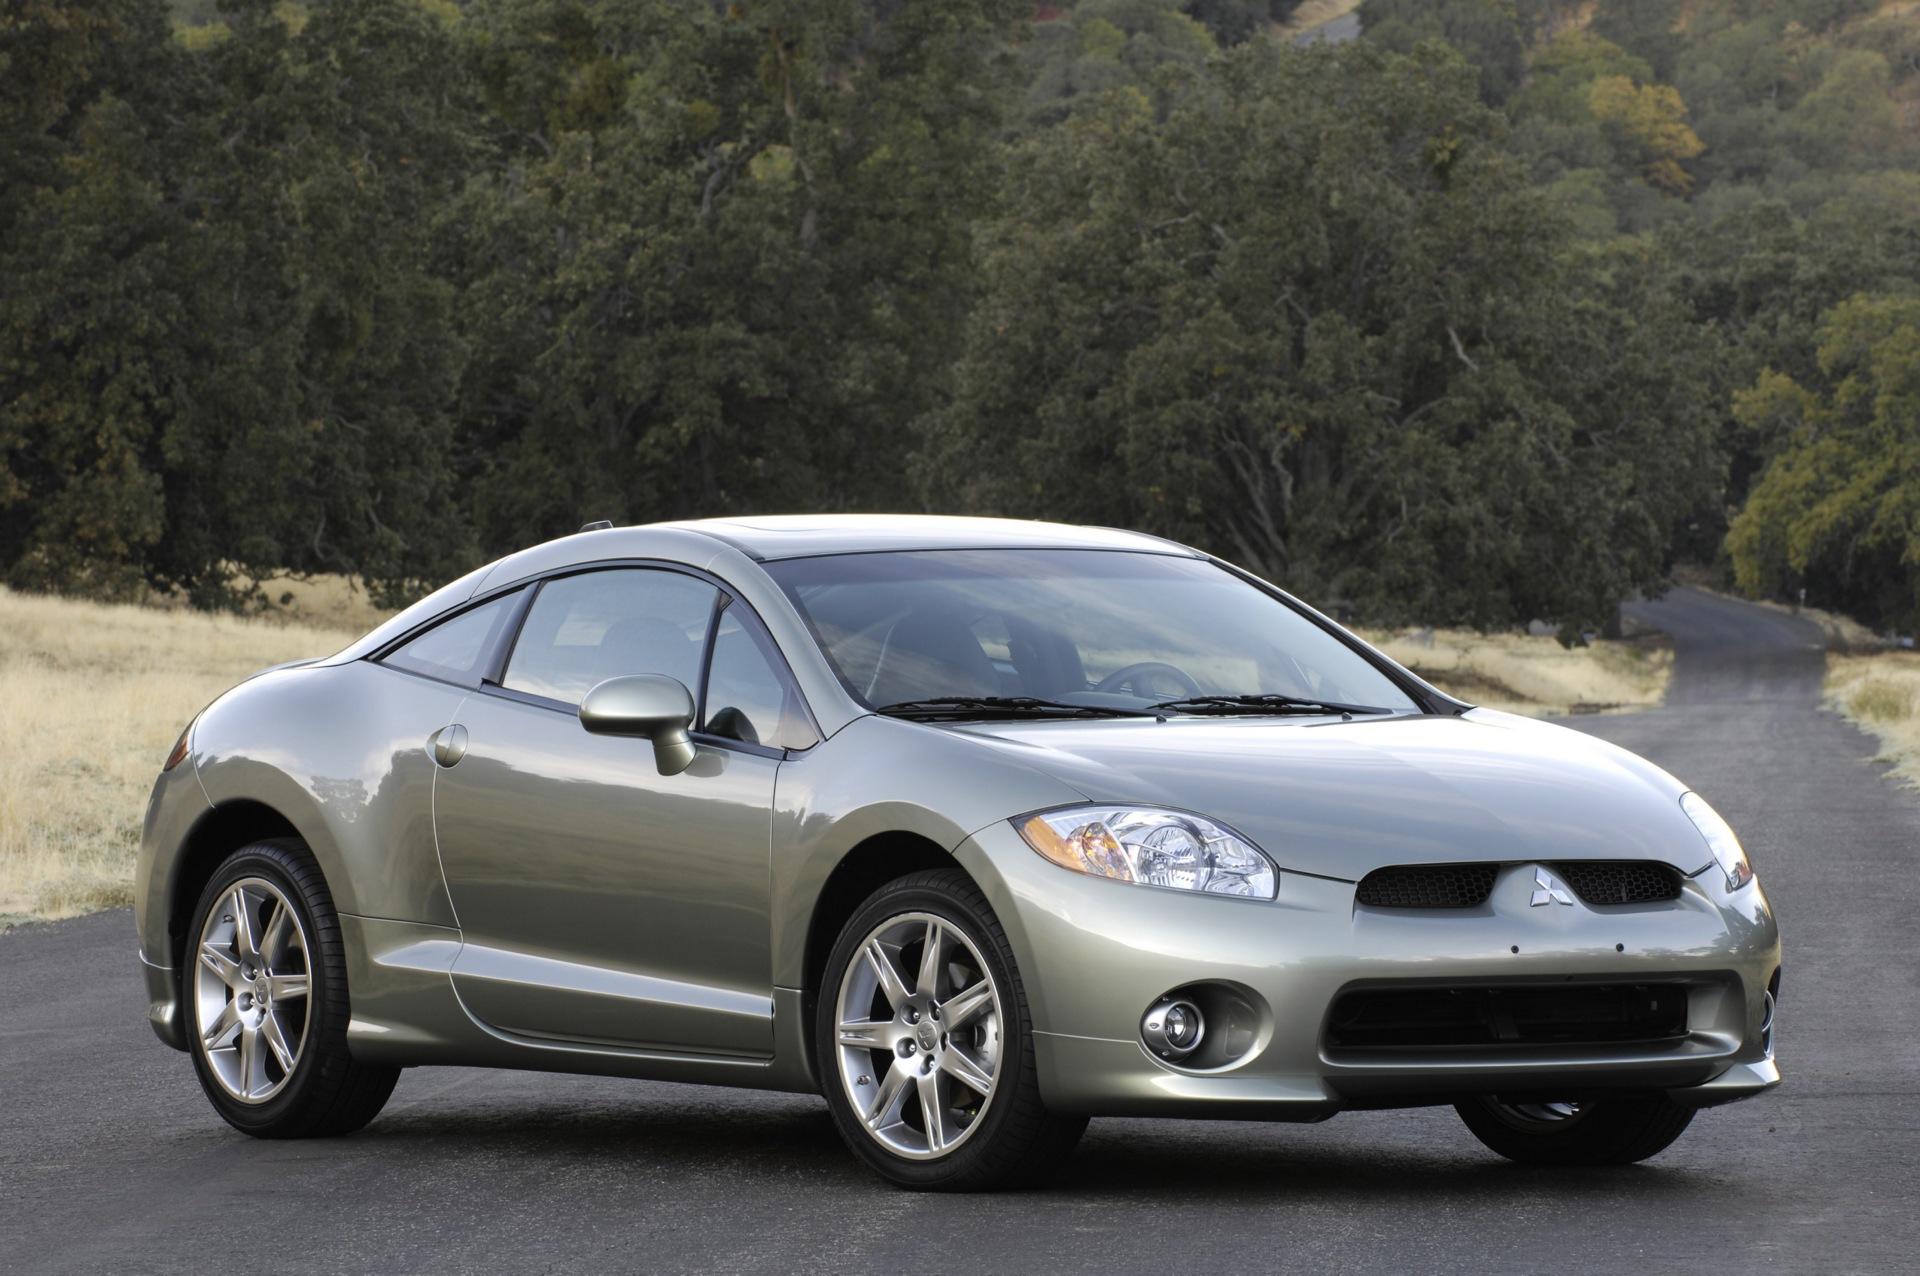 2008 Mitsubishi Eclipse News And Information